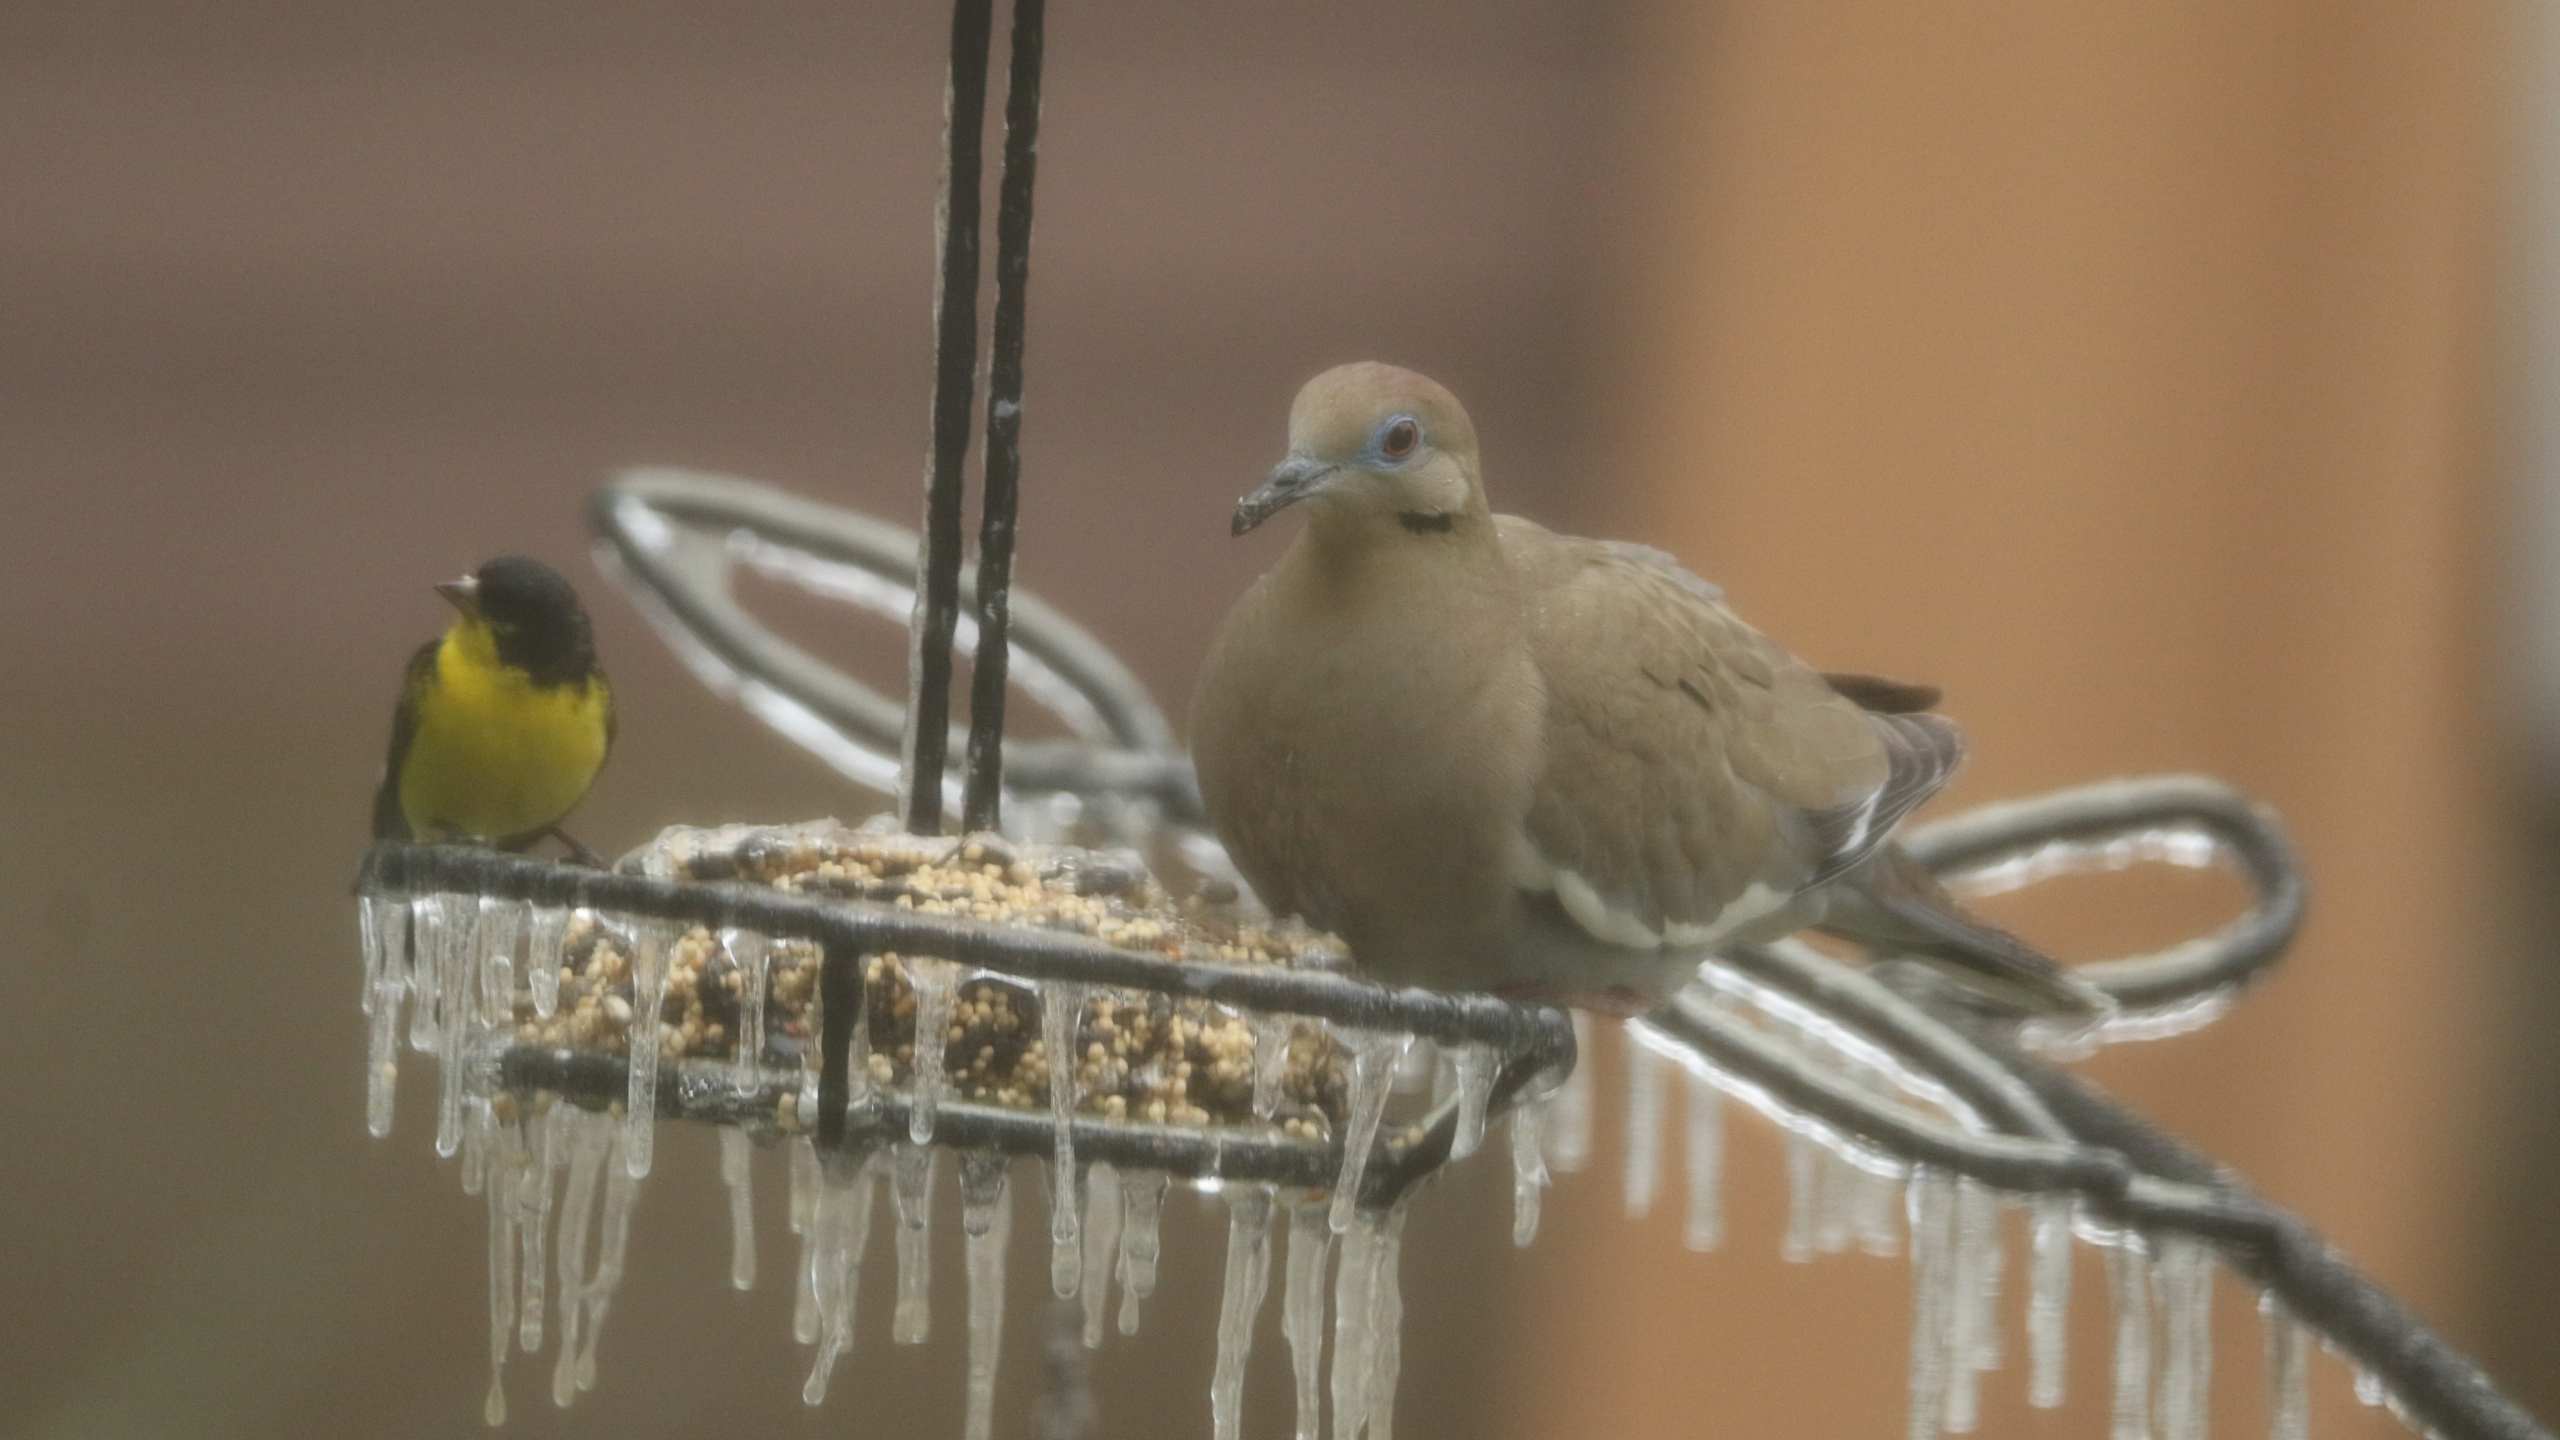 Birds on a frozen feeder in Cedar Park Feb. 11, 2021 (Courtesy Susan Thomas)